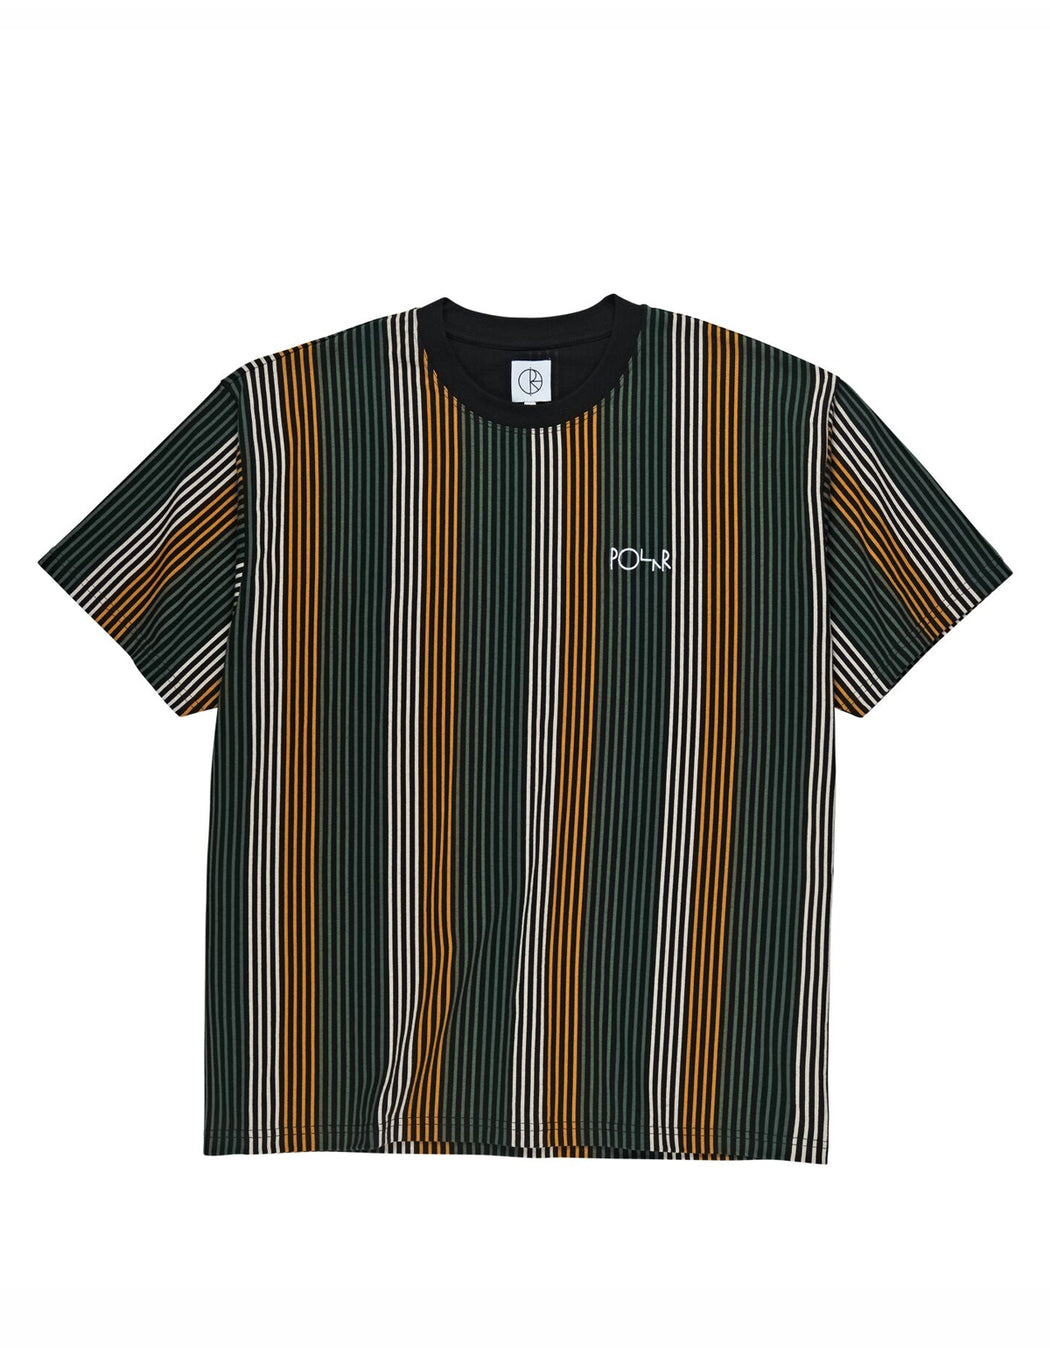 Polar Multi Color Tee Black